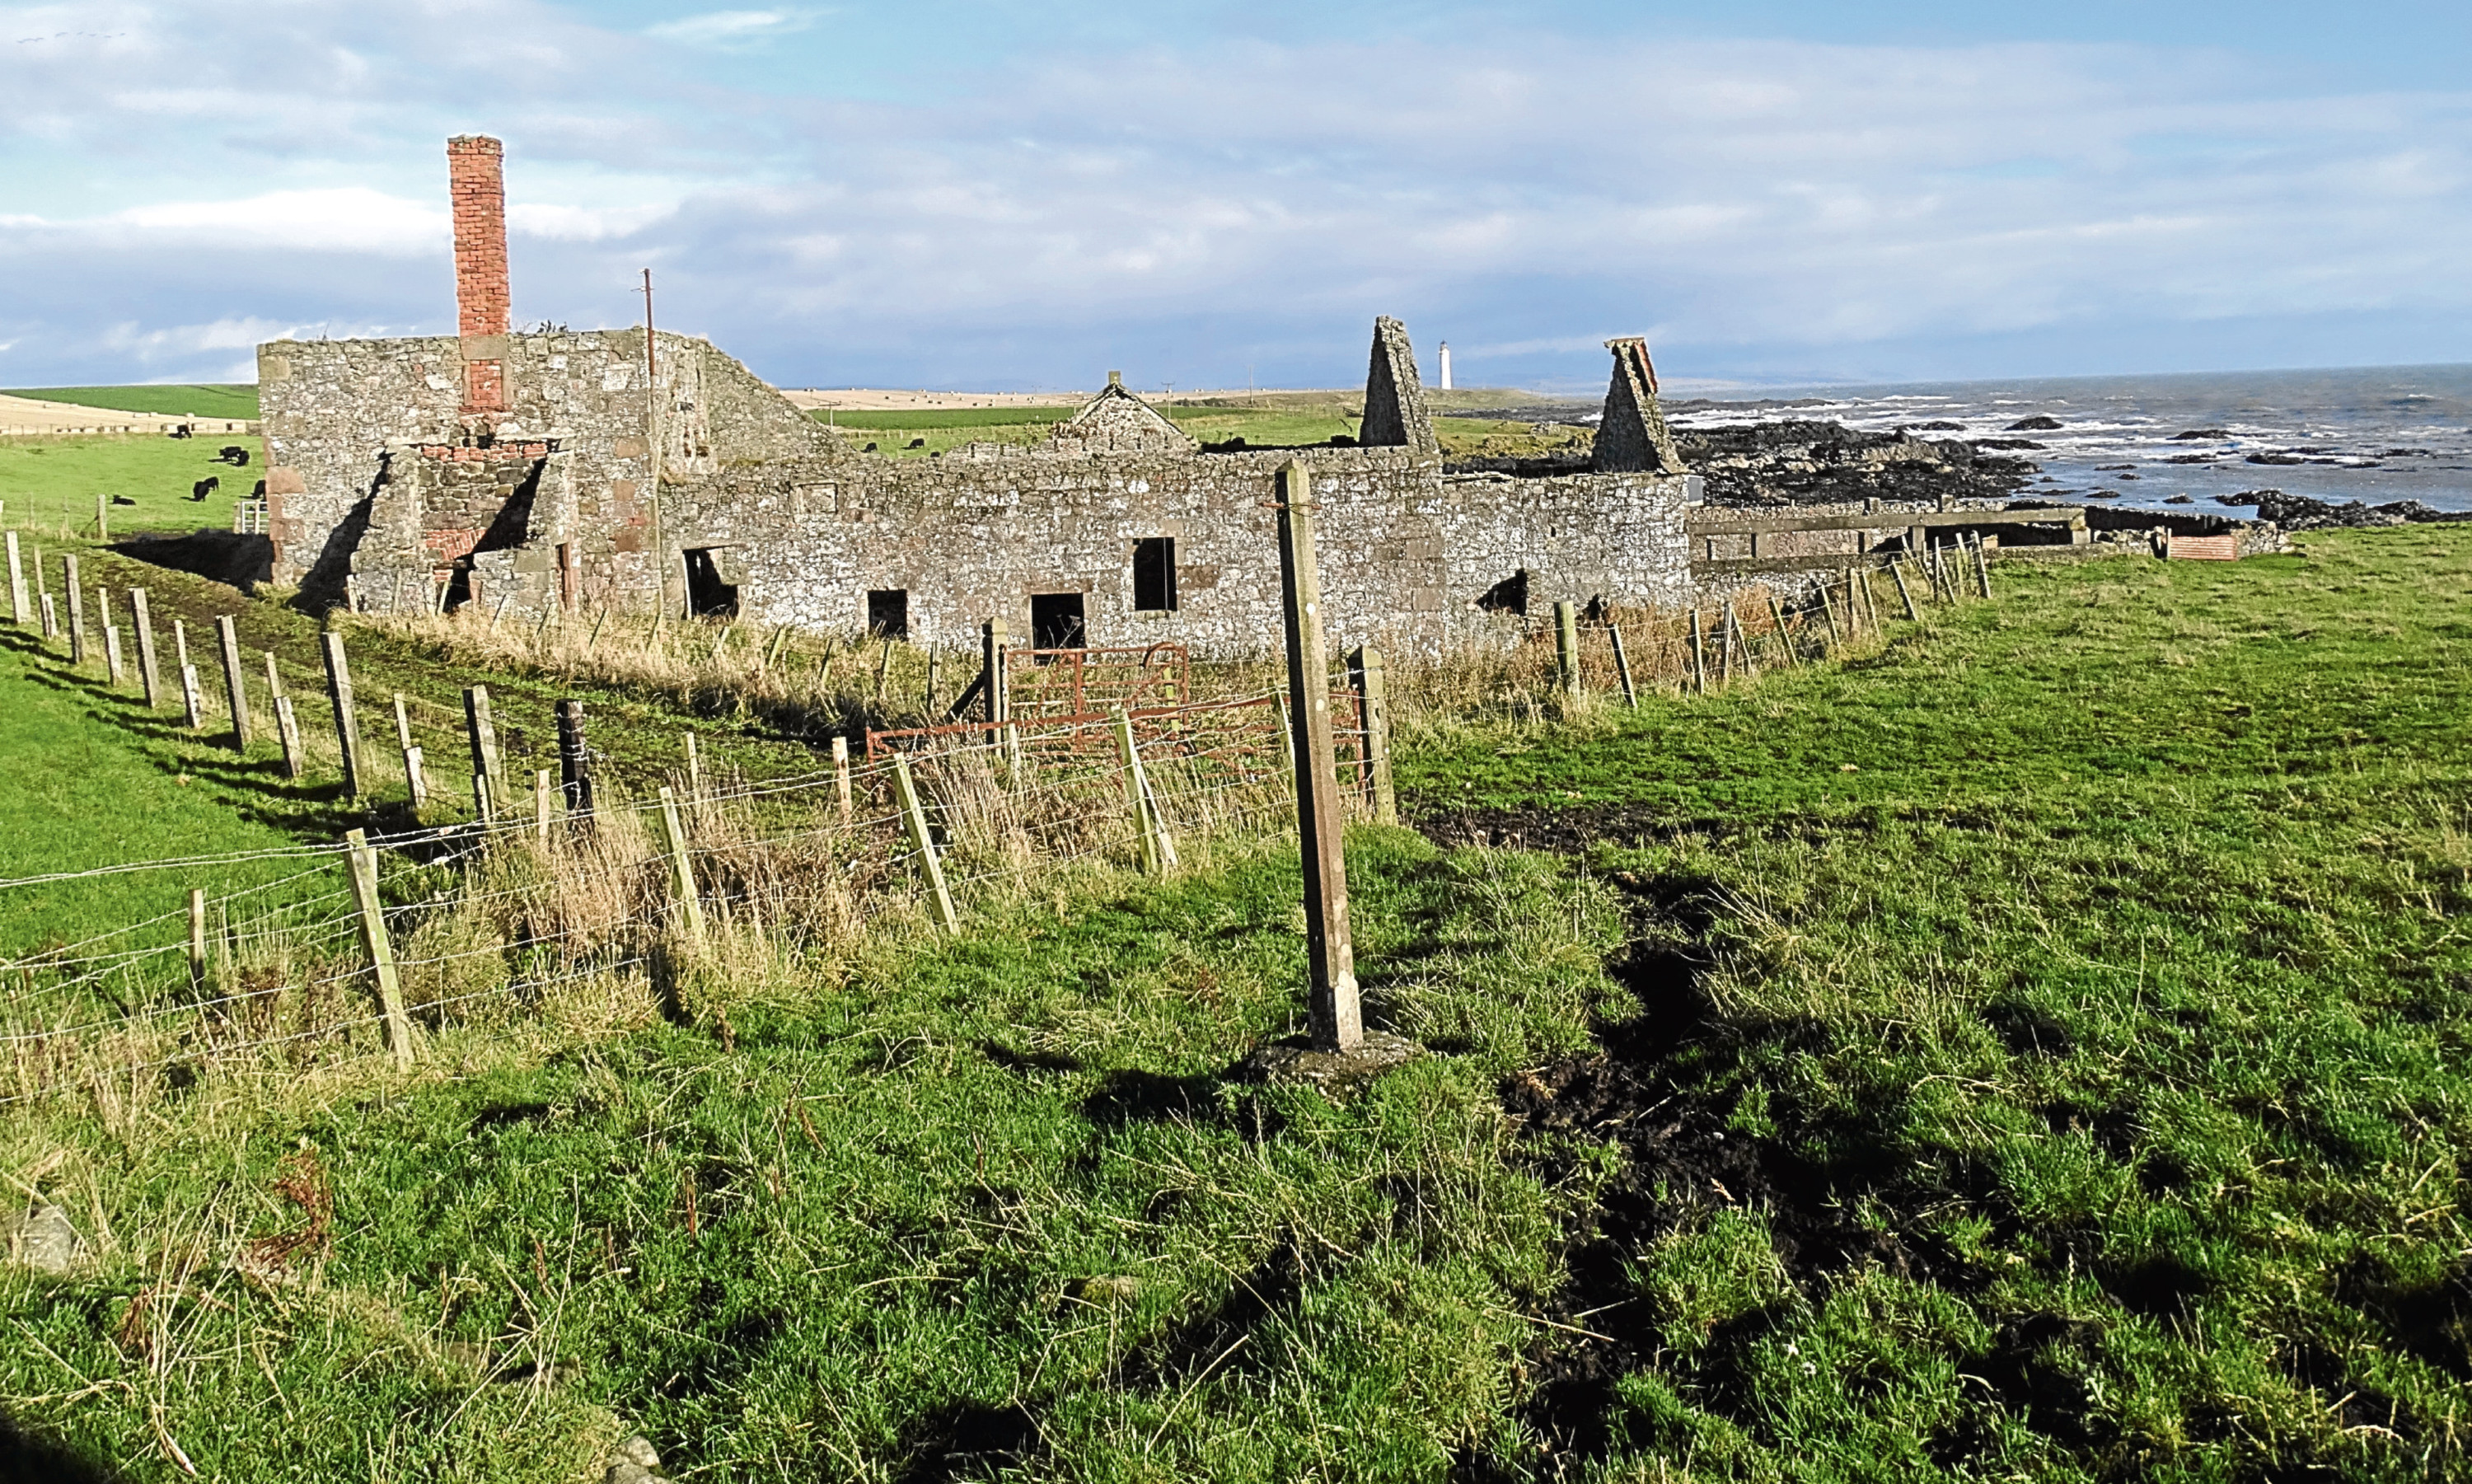 The old flax mill at Usan Farm with Scurdieness Lighthouse in the background.